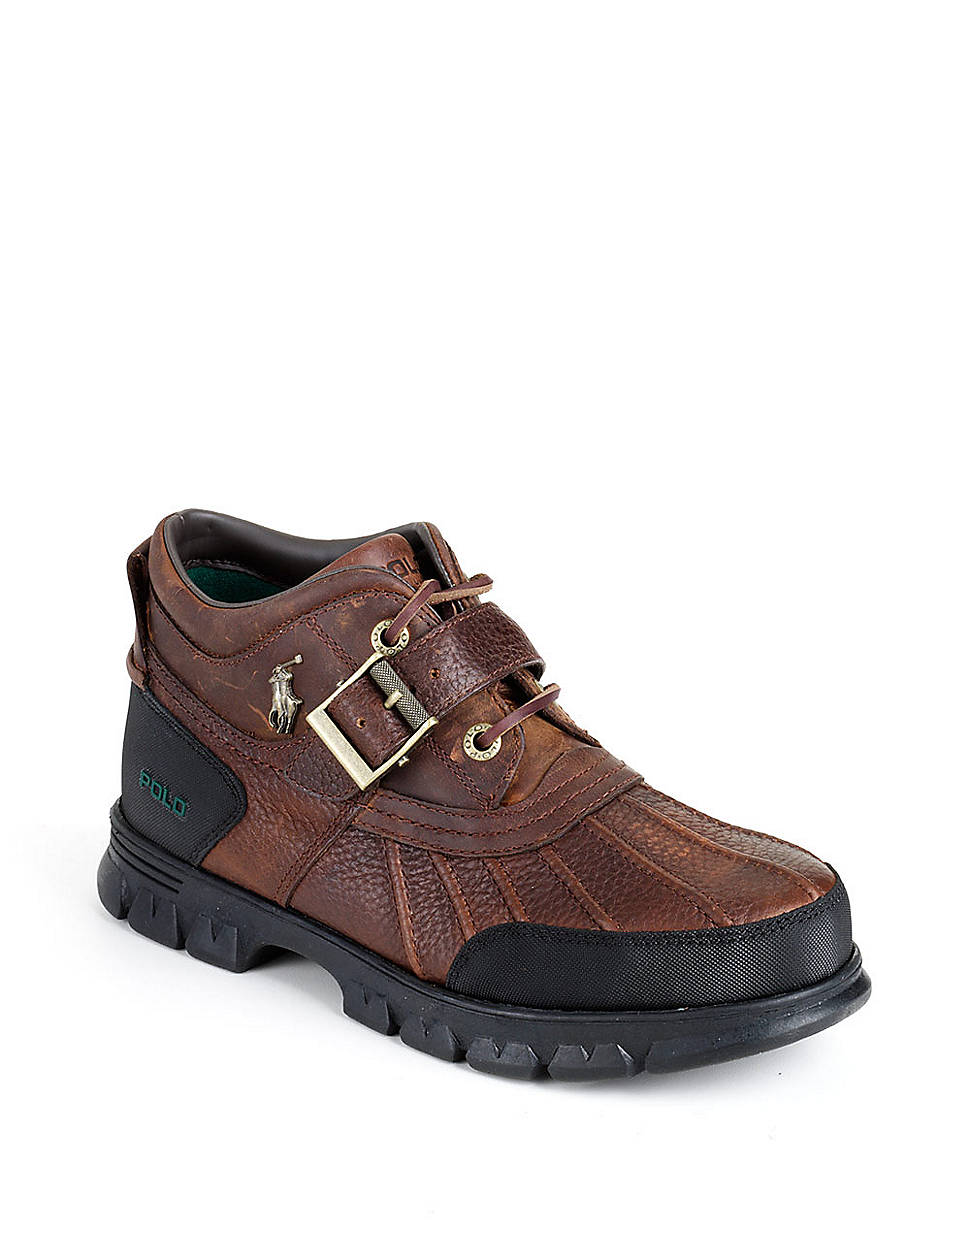 Polo Ralph Lauren Dover Iii Leather Hiking Boots In Brown